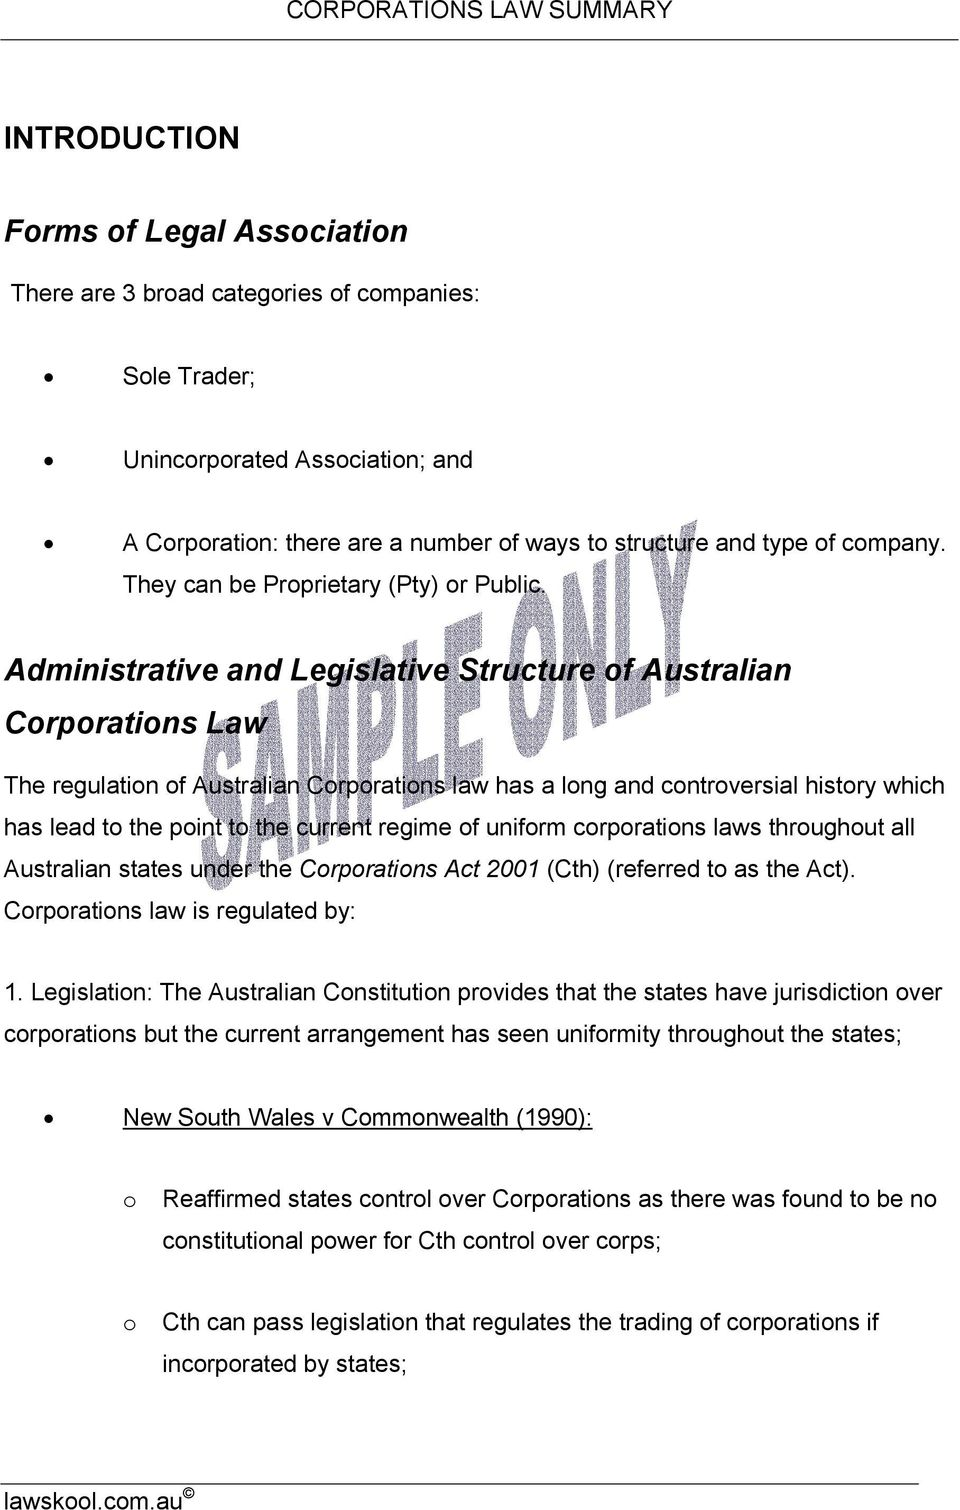 Administrative and Legislative Structure f Australian Crpratins Law The regulatin f Australian Crpratins law has a lng and cntrversial histry which has lead t the pint t the current regime f unifrm